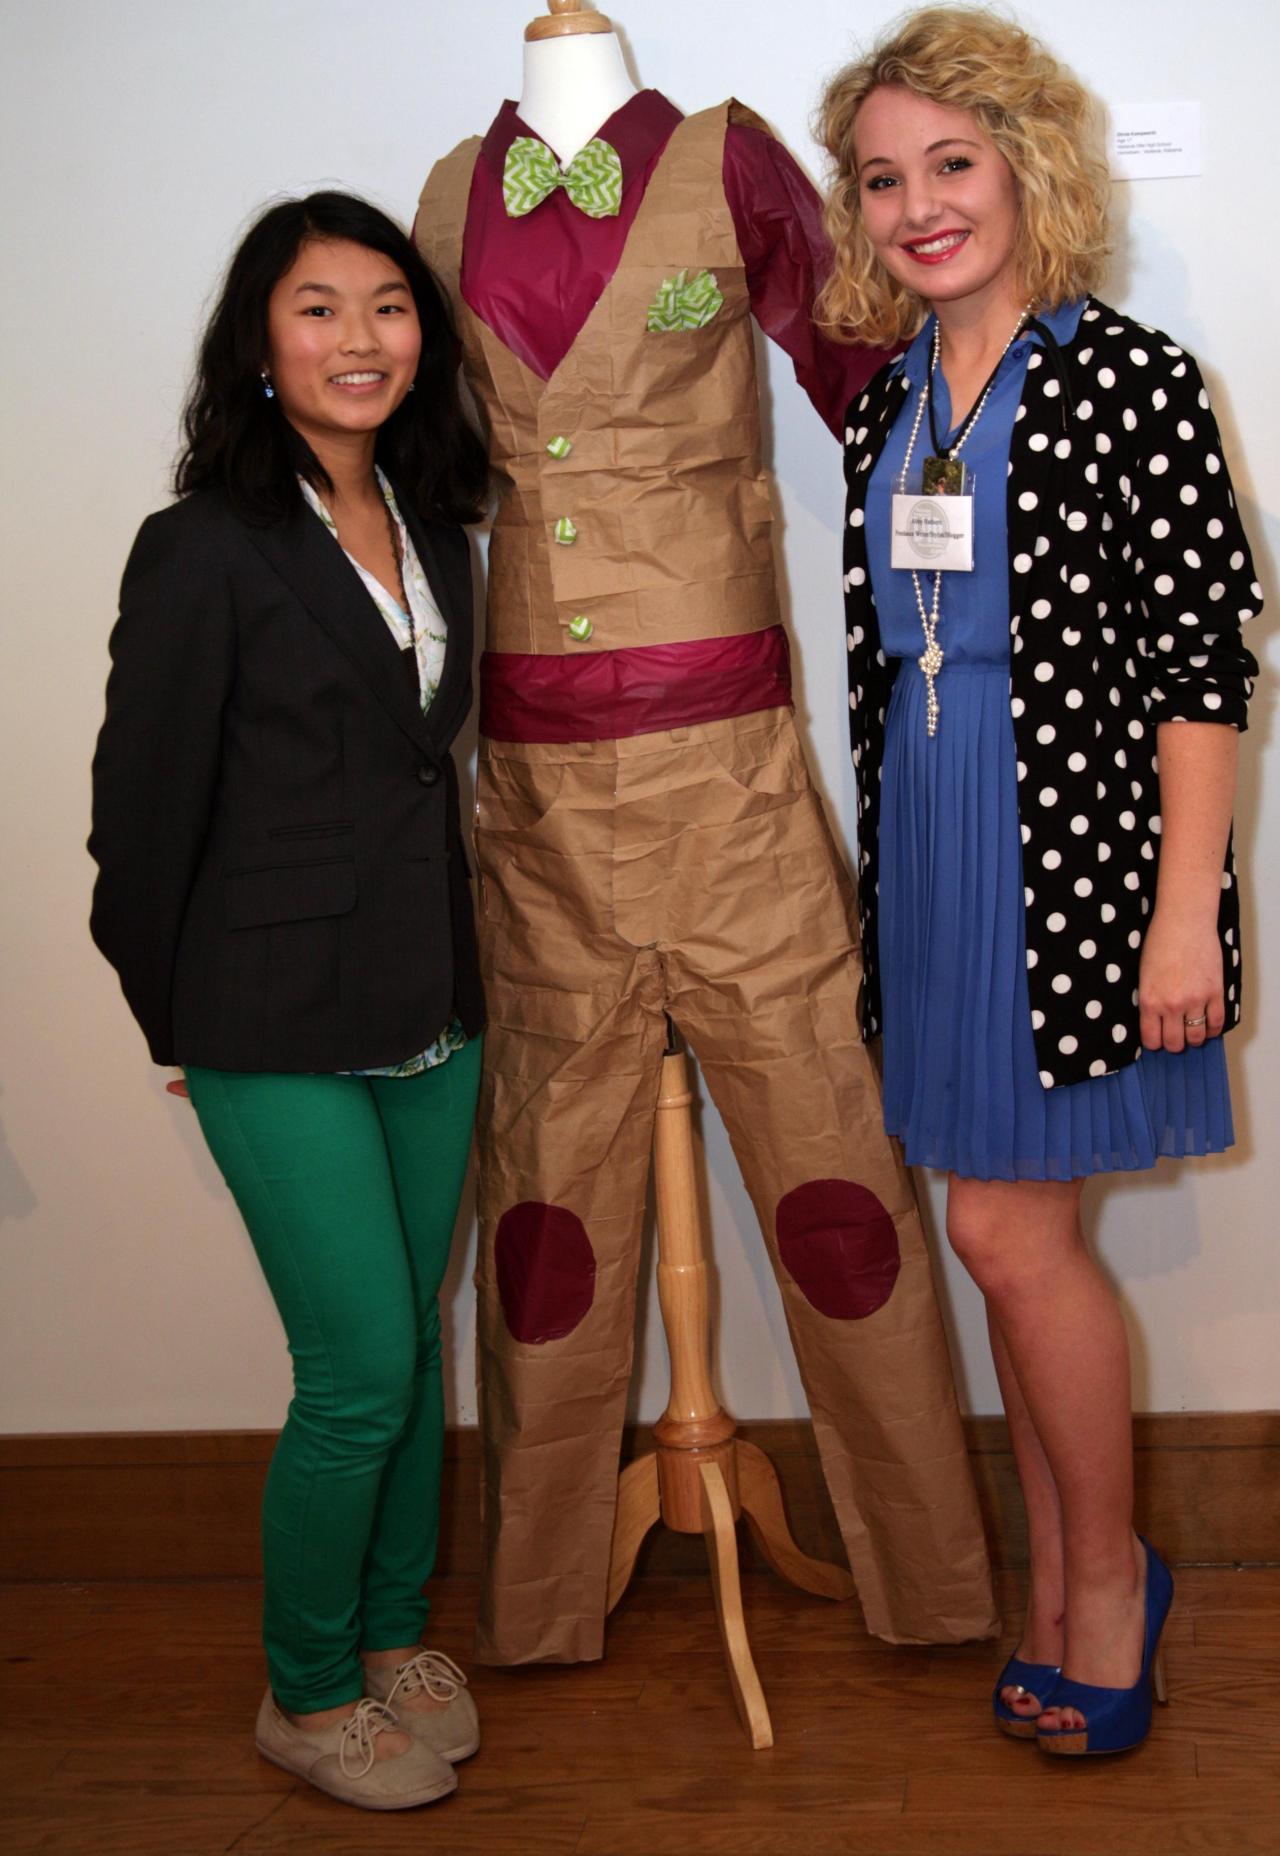 This creative suit was designed by Odelia Huang (age 14) of Pizitz Middle School. I love the green bowtie-terrific accent!